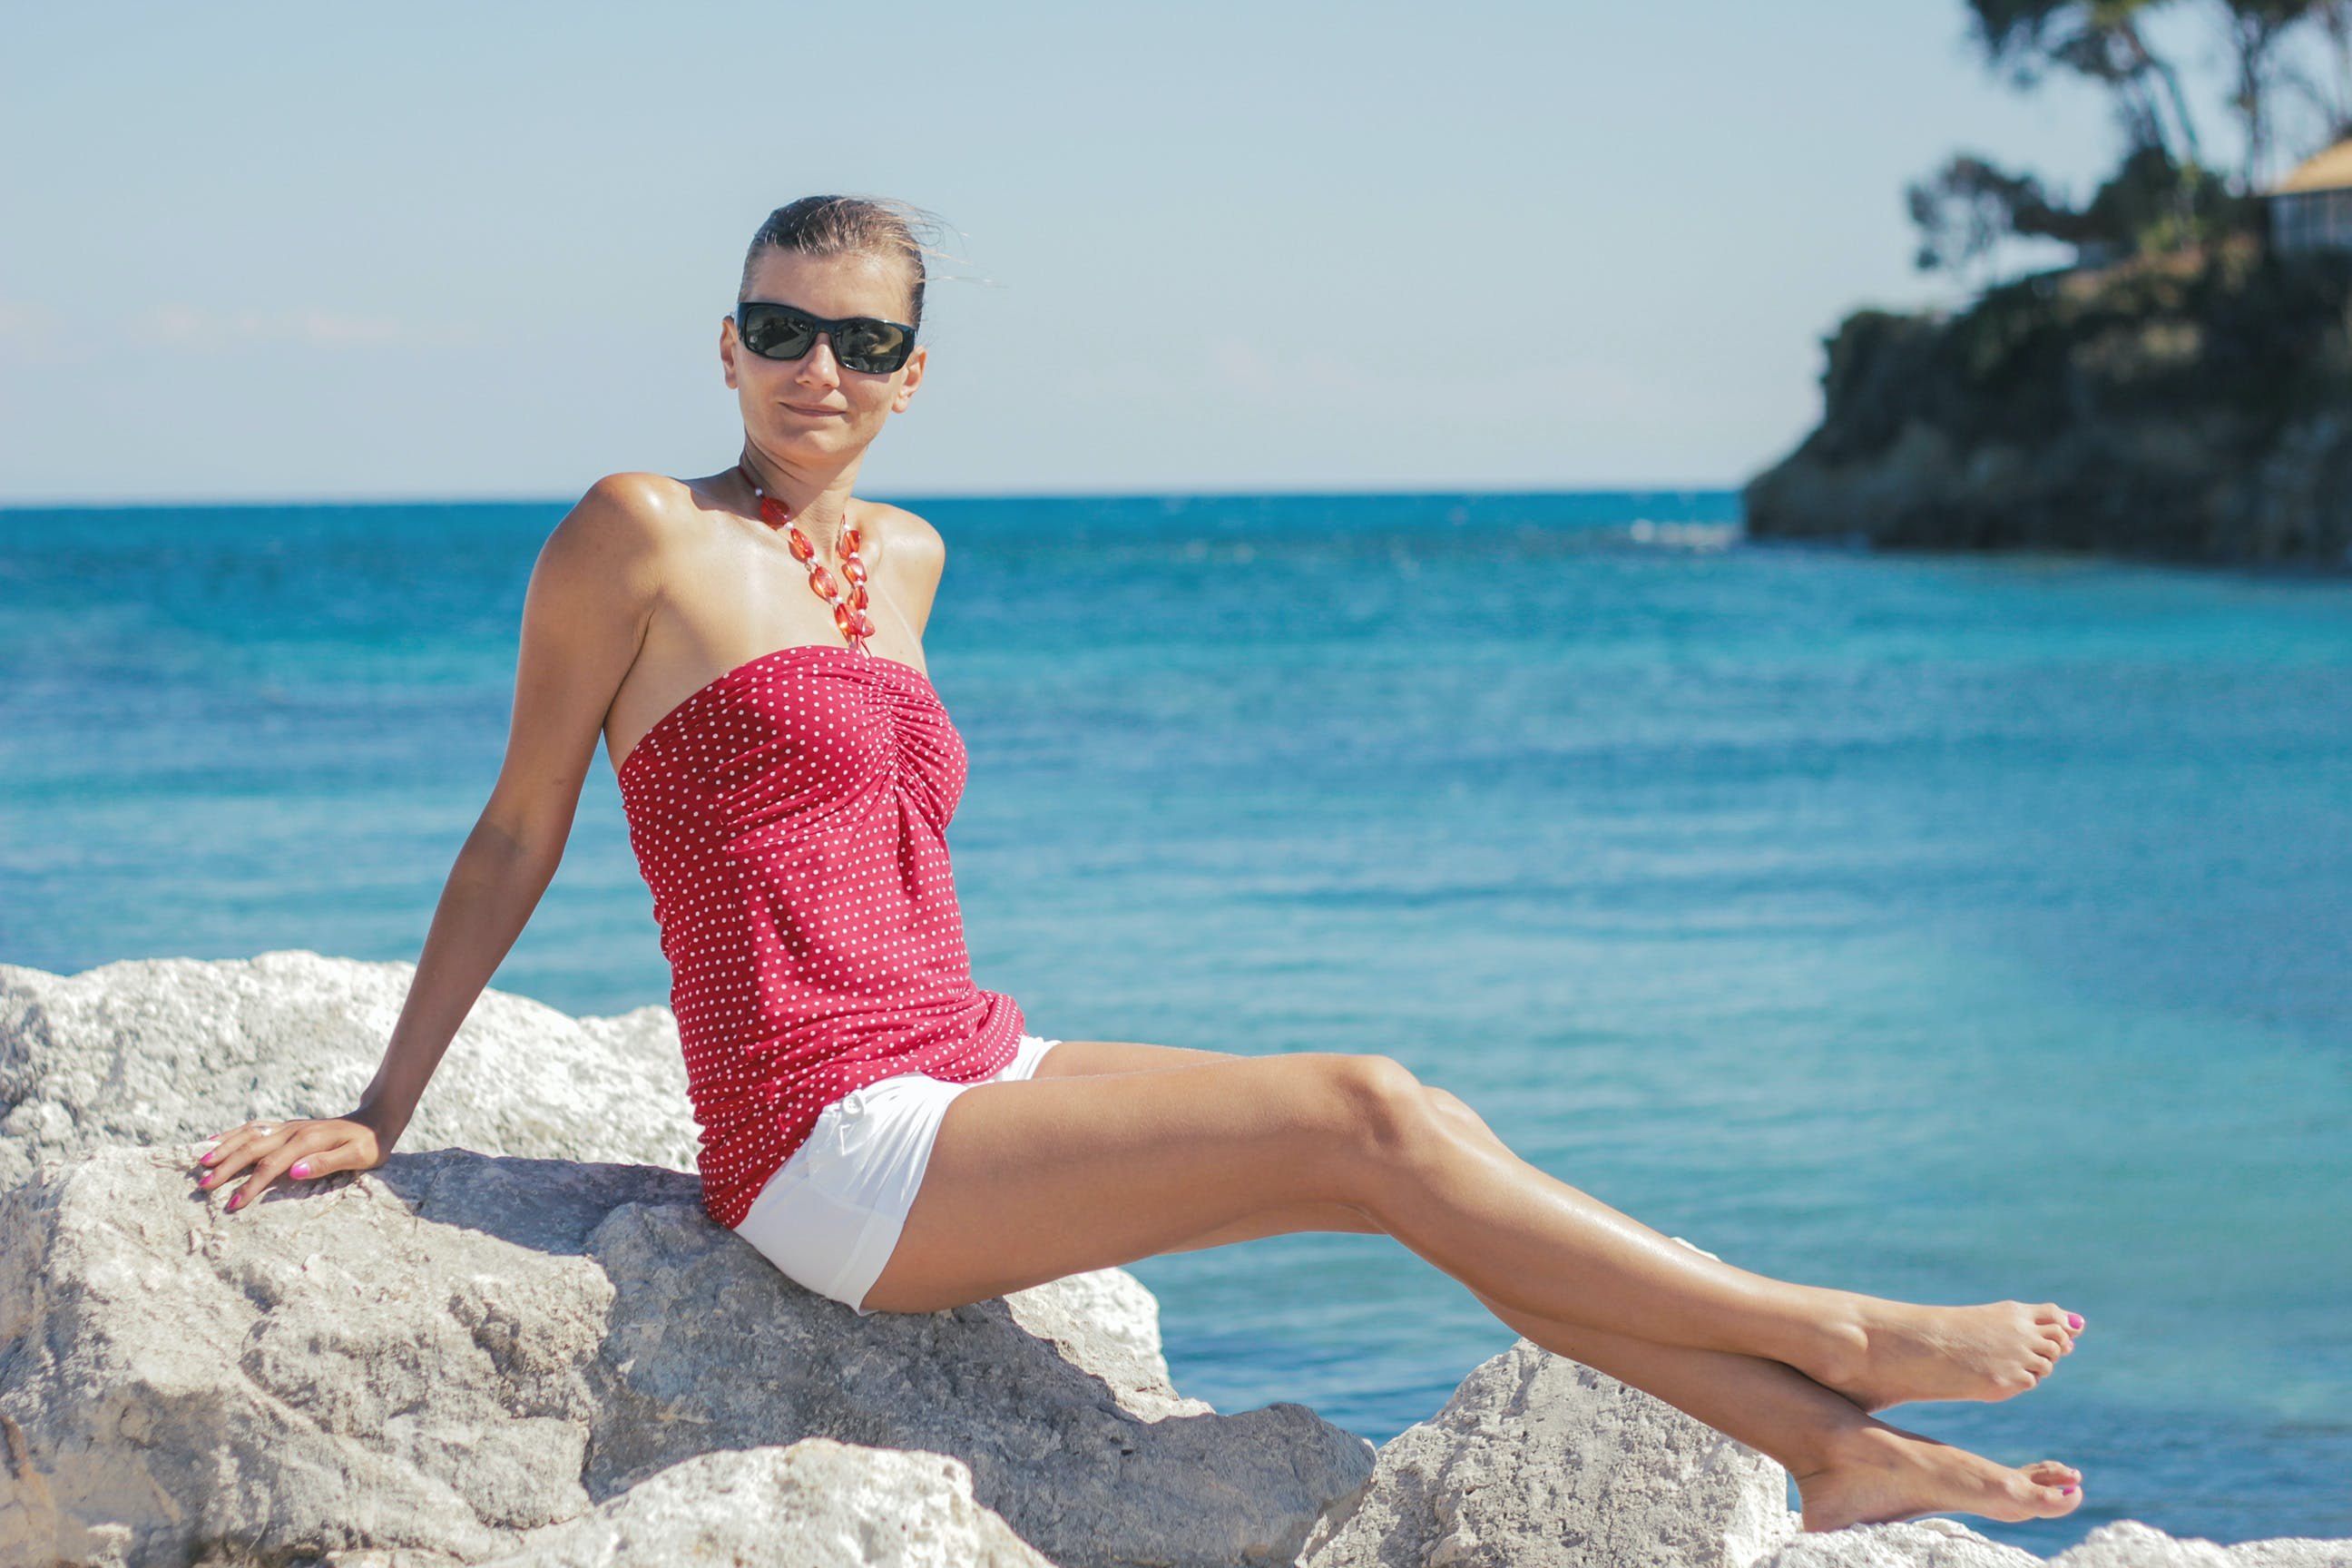 Woman Wearing Pink Tube Top Sitting on Rock